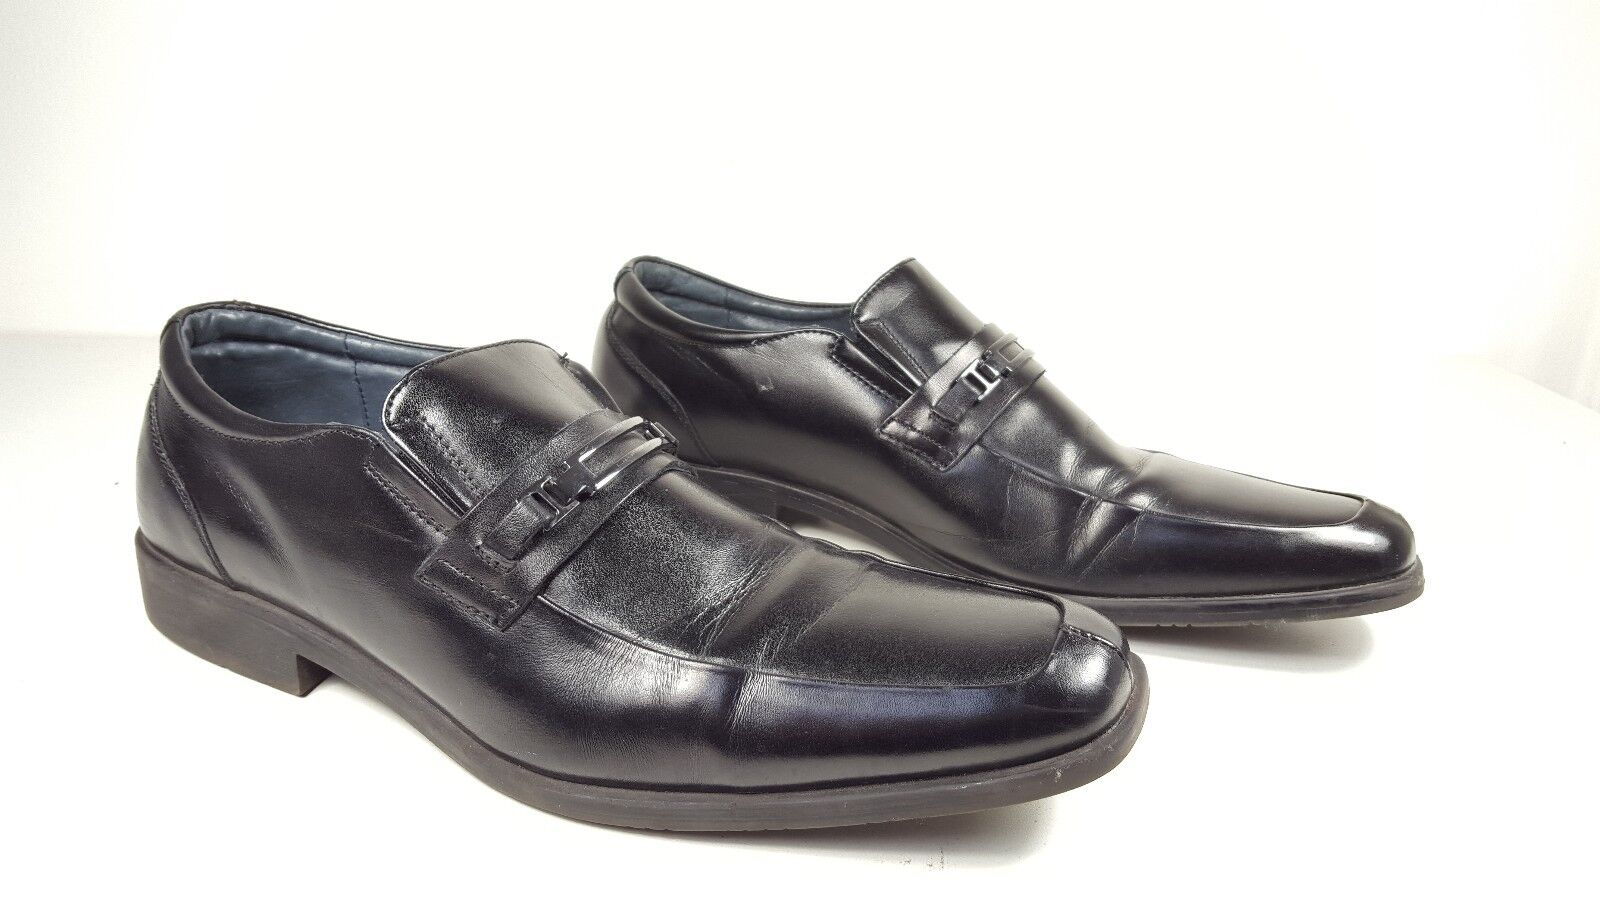 7c050f496589e6 size 11 Steve Madden Madden Madden Cirka Black Leather Oxfords Loafers Mens  Dress Shoes ee186f